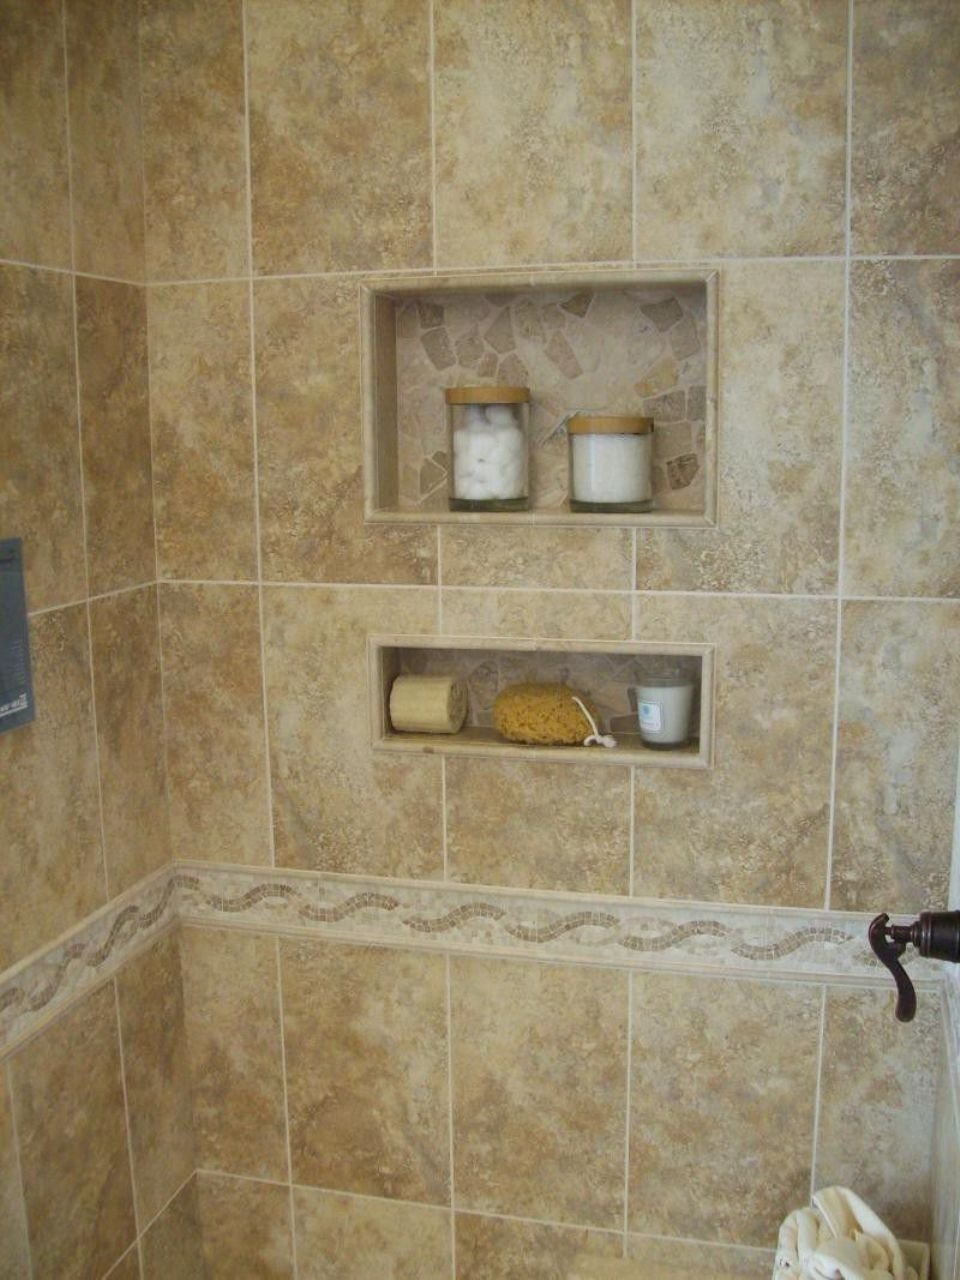 10 Fantastic Tile Shower Ideas For Small Bathrooms shower tile ideas small bathrooms home improvement ideas 2021